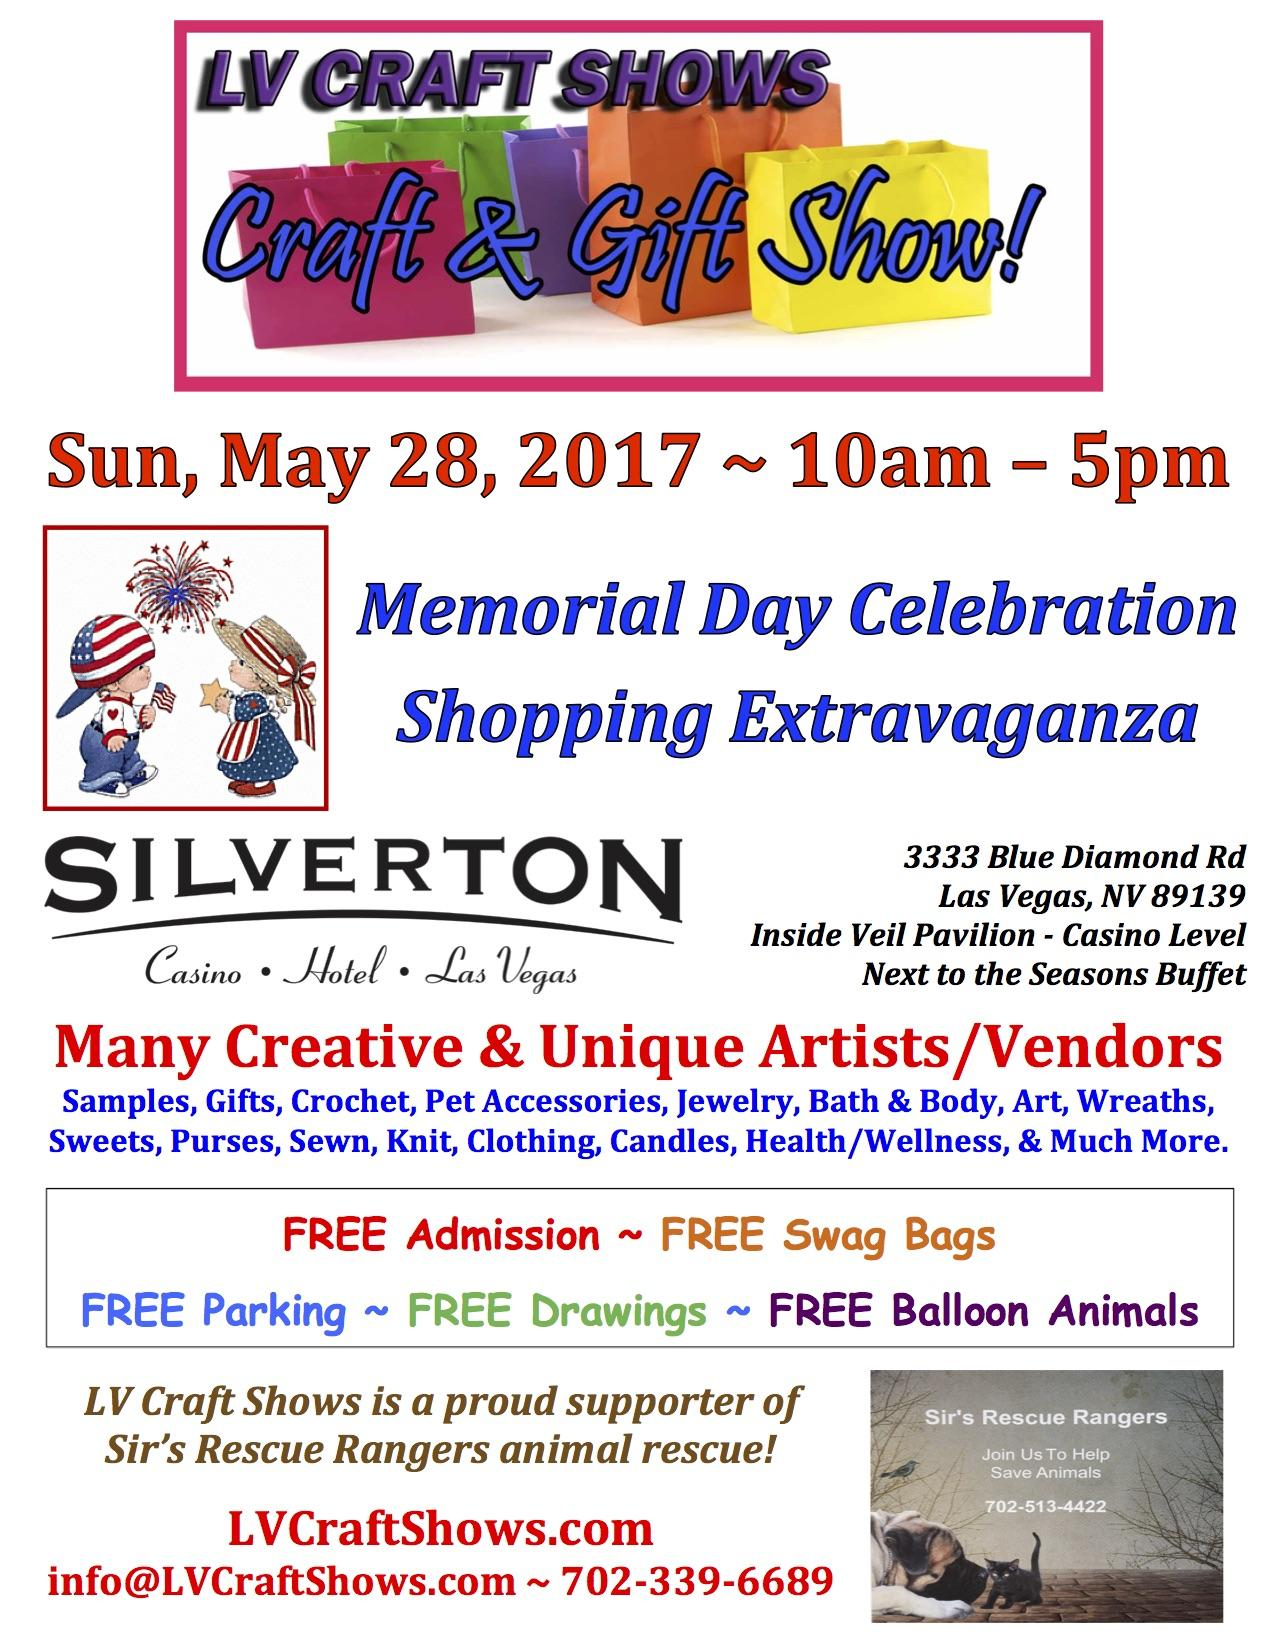 Memorial Day Celebration Shopping Extravaganz